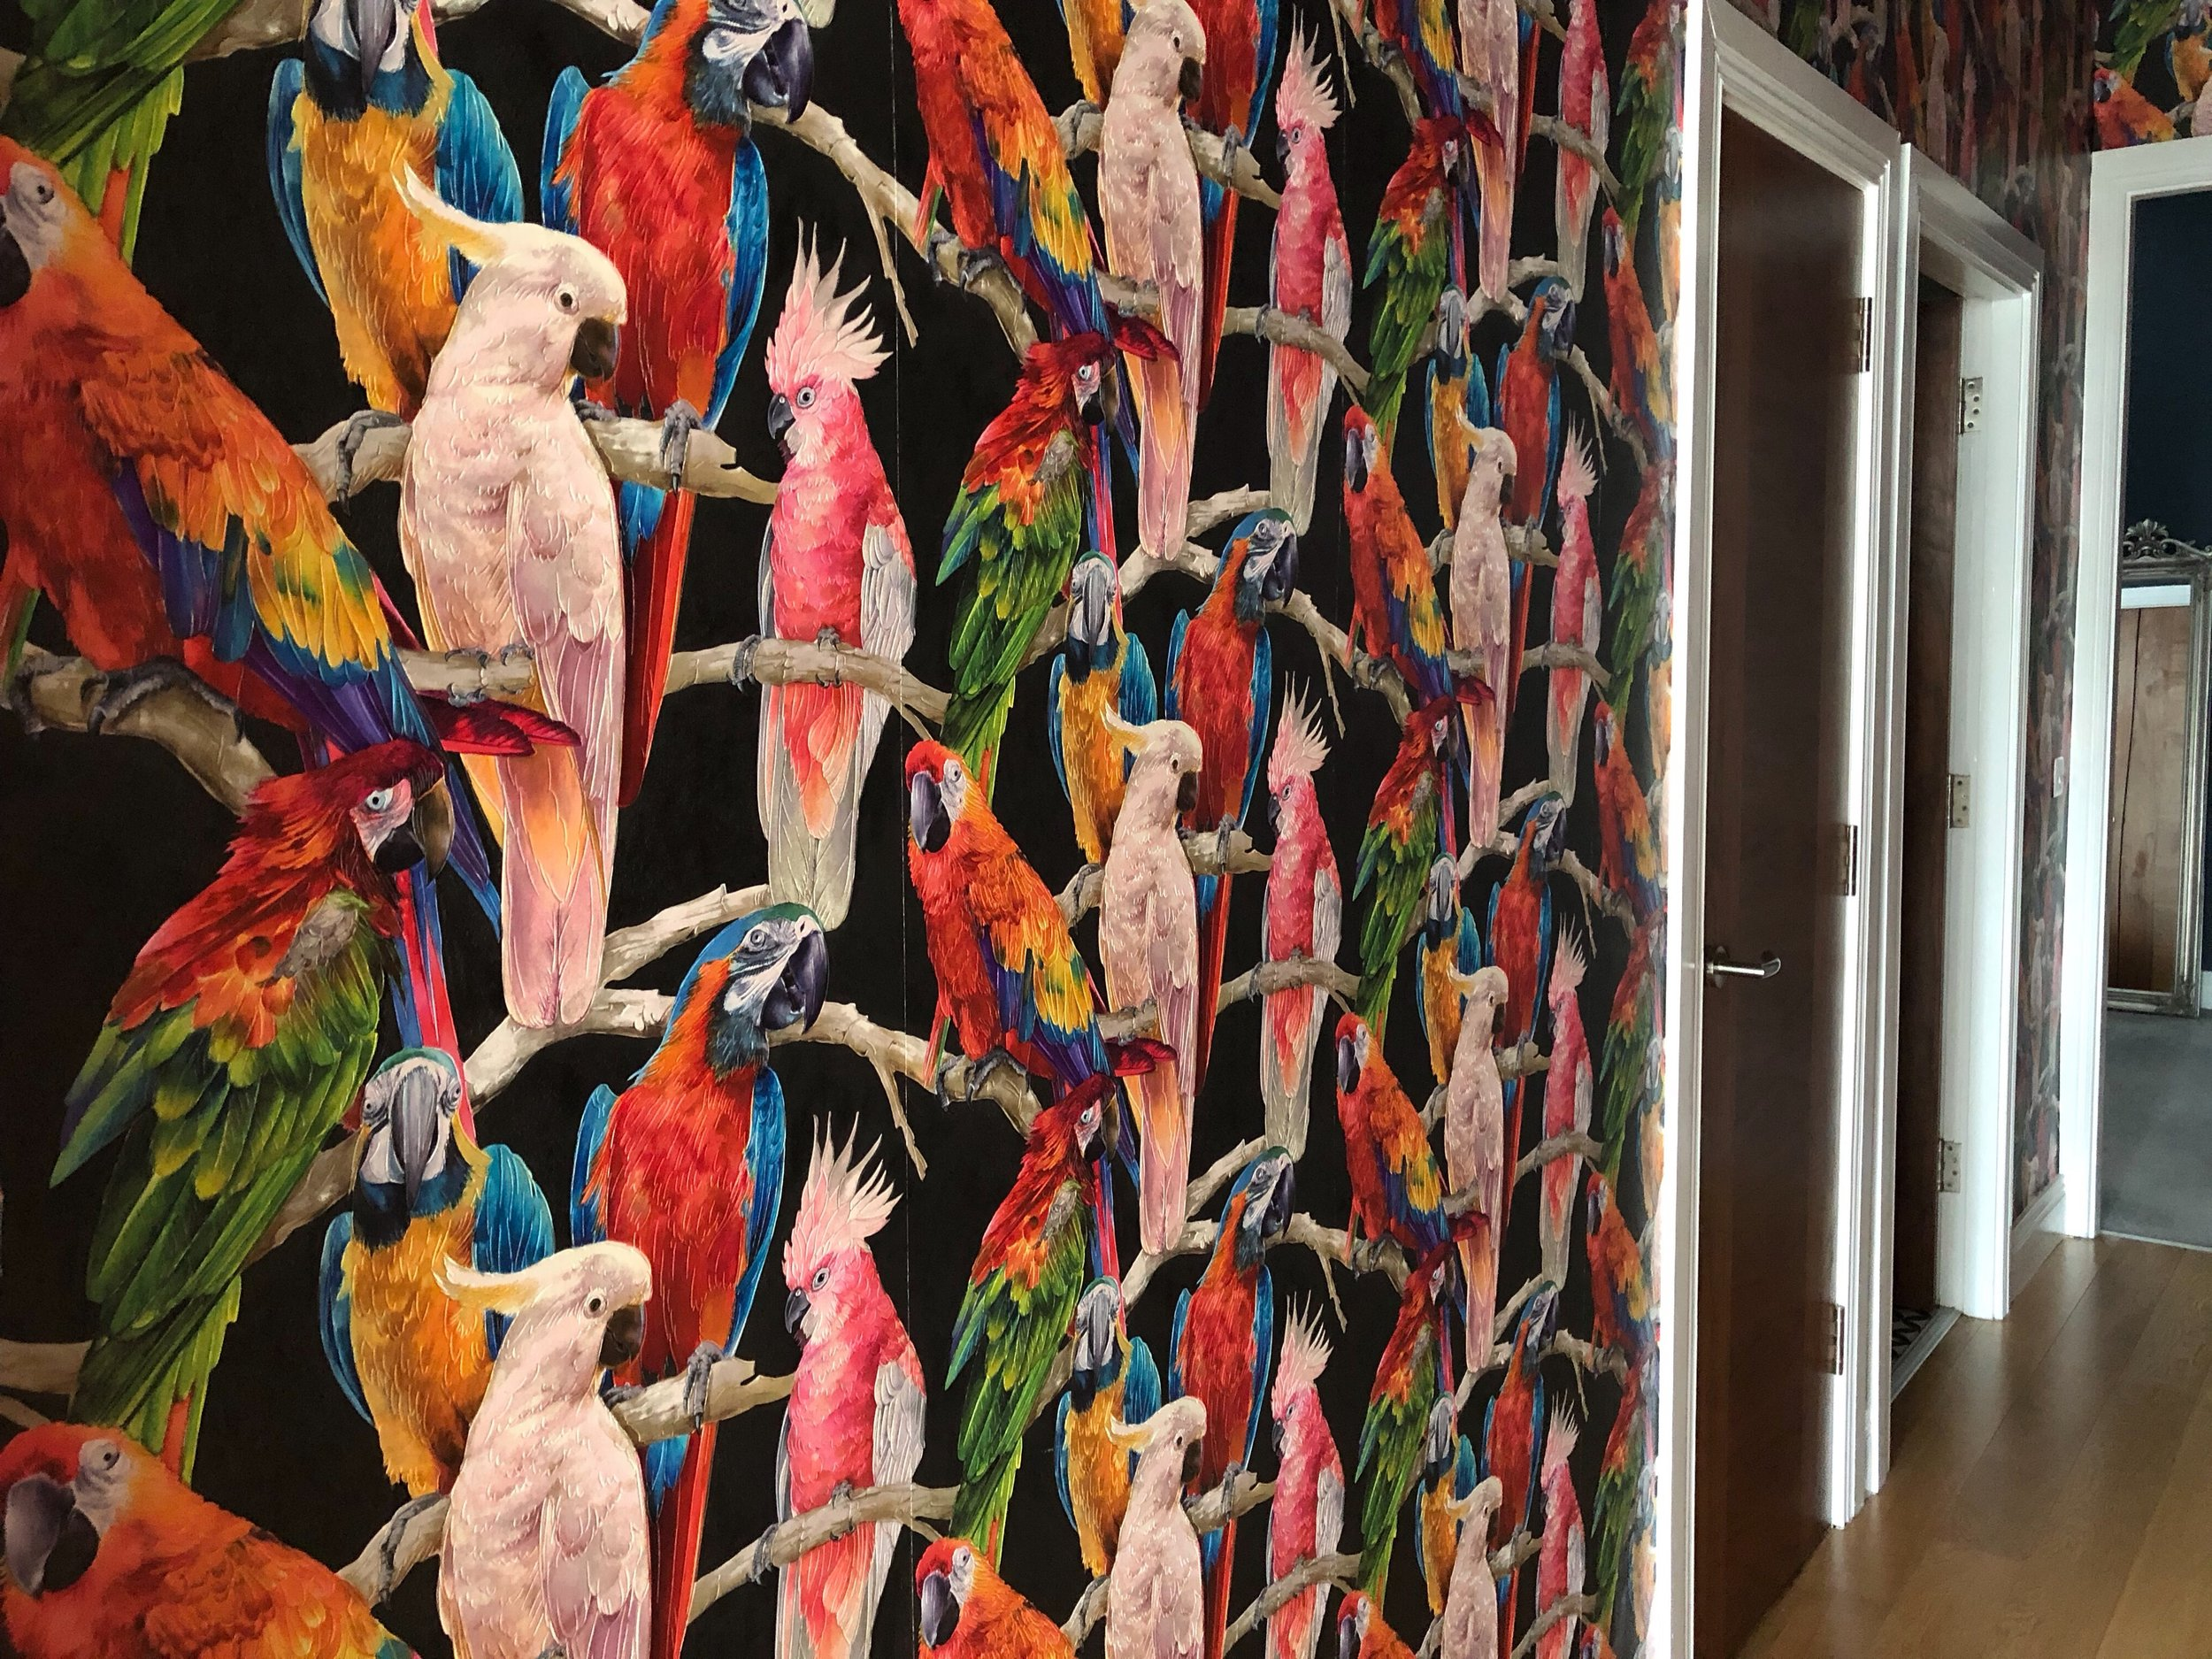 Hallway papered in Parrots wallpaper by Albany